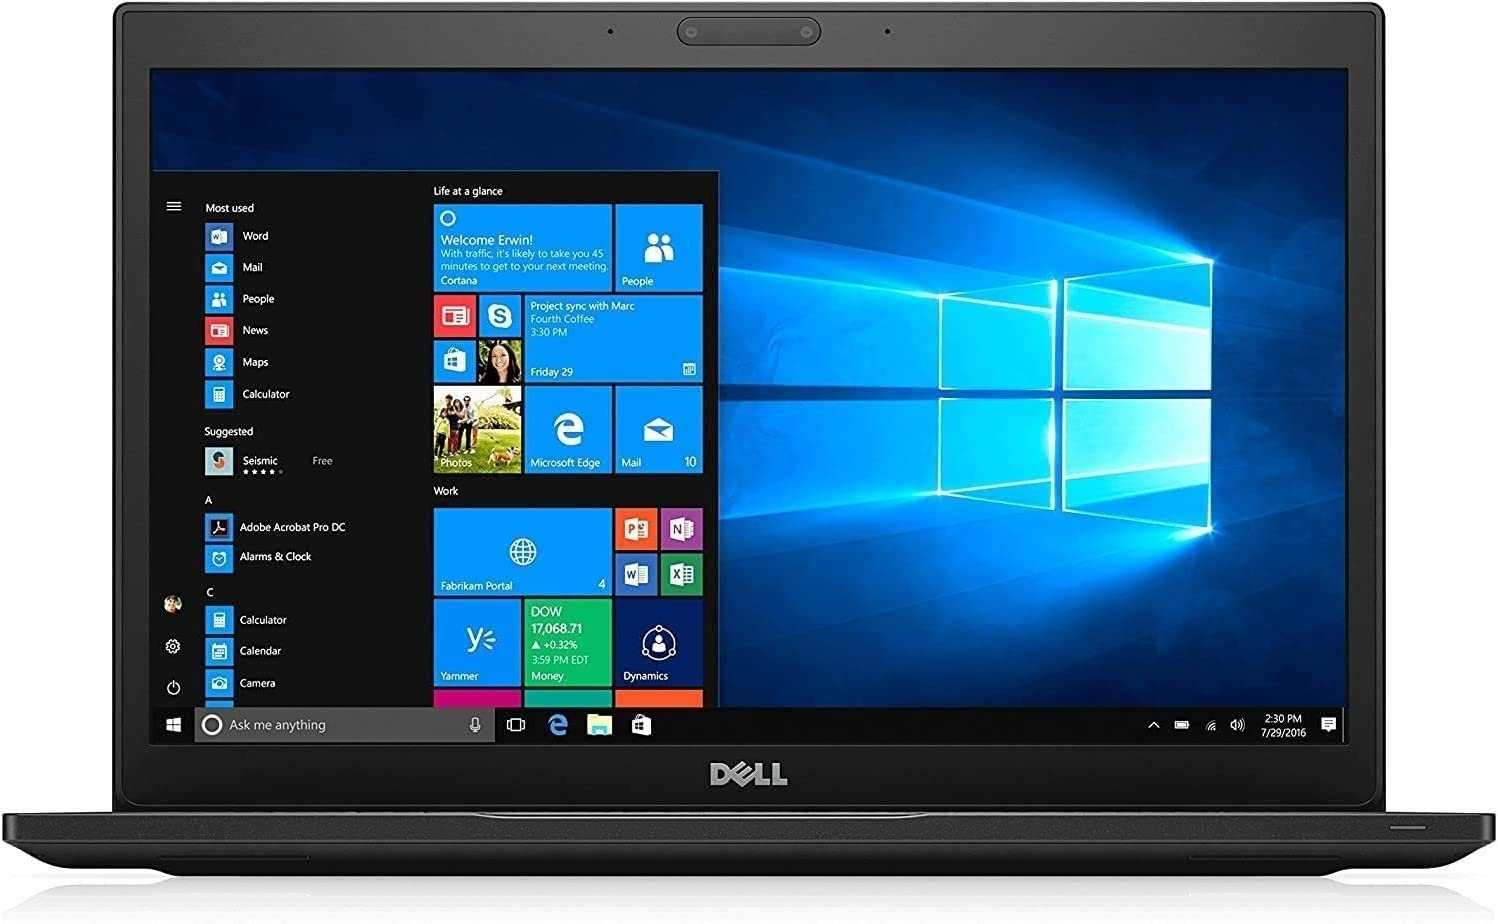 "Dell Latitude 14 7000 Business UltraBook - 14"" Liquid Crystal (1366x768) Display, Intel Core i5-5300U 2.3 GHz 256GB SSD, 8GB DDR4, Webcam, Bluetooth, Windows 10 Professional (Renewed)"